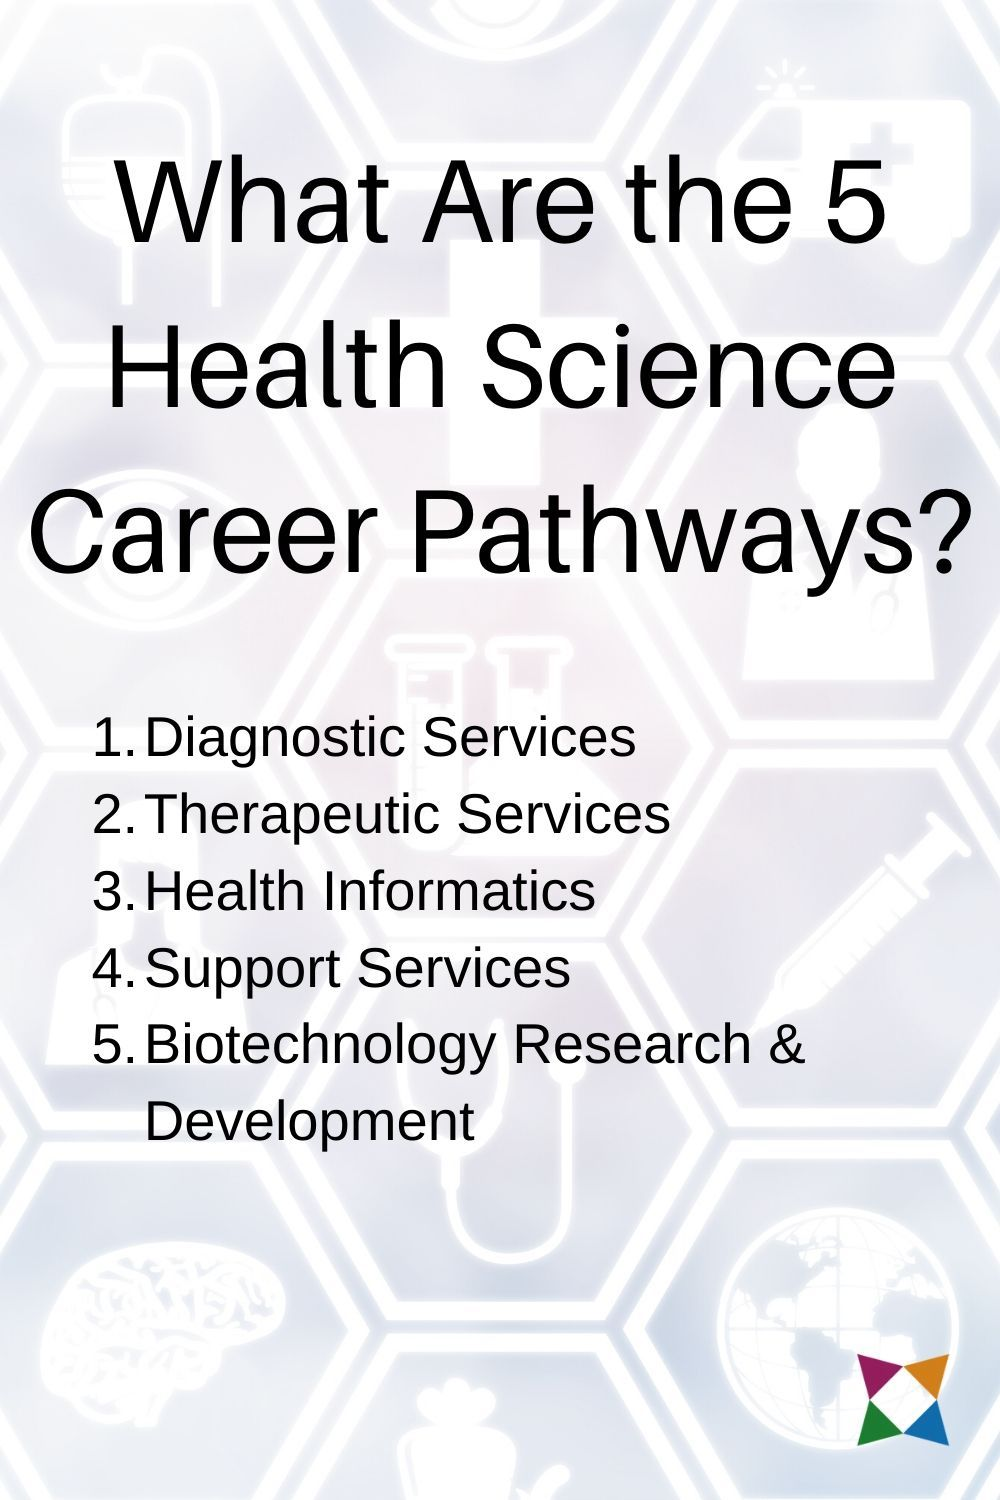 What Are The 5 Health Science Career Pathways Career Pathways Health Science Health Science Education